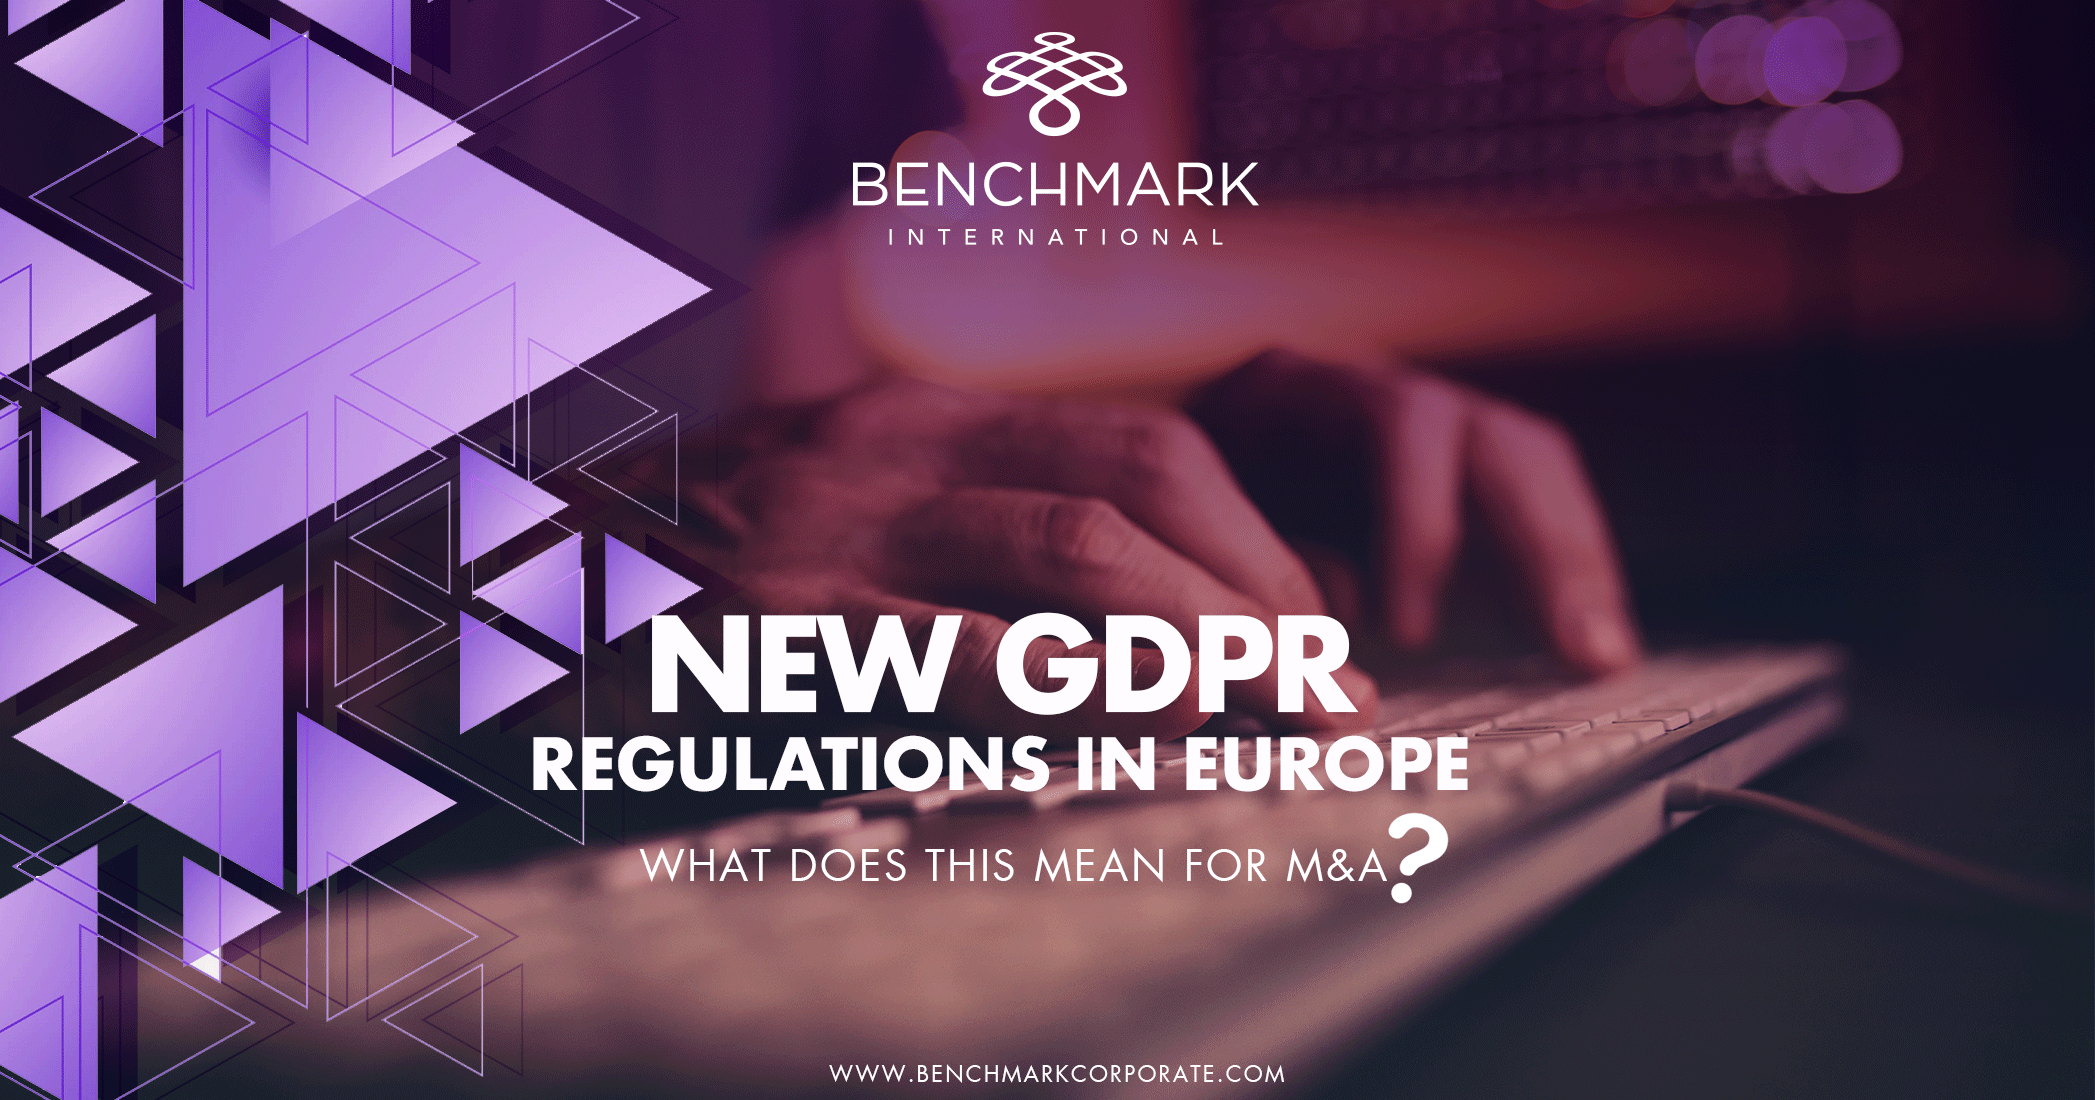 New GDPR Regulations in Europe: What Does This Mean for M&A?